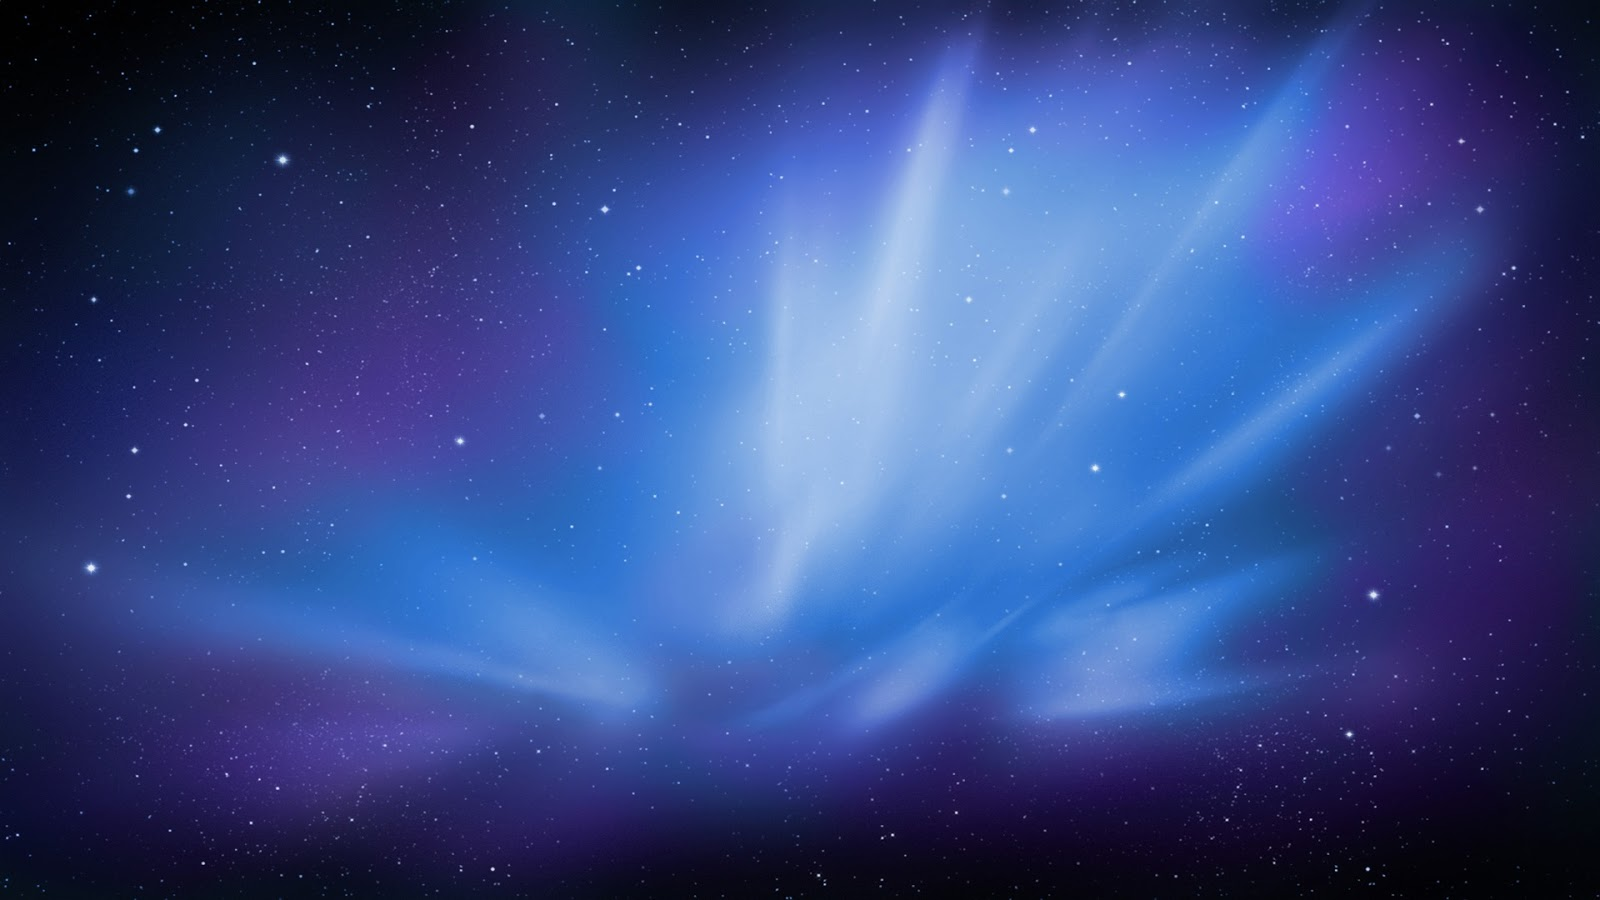 High Definition Wallpapers: Abstract, 3D, and Other Cool ...